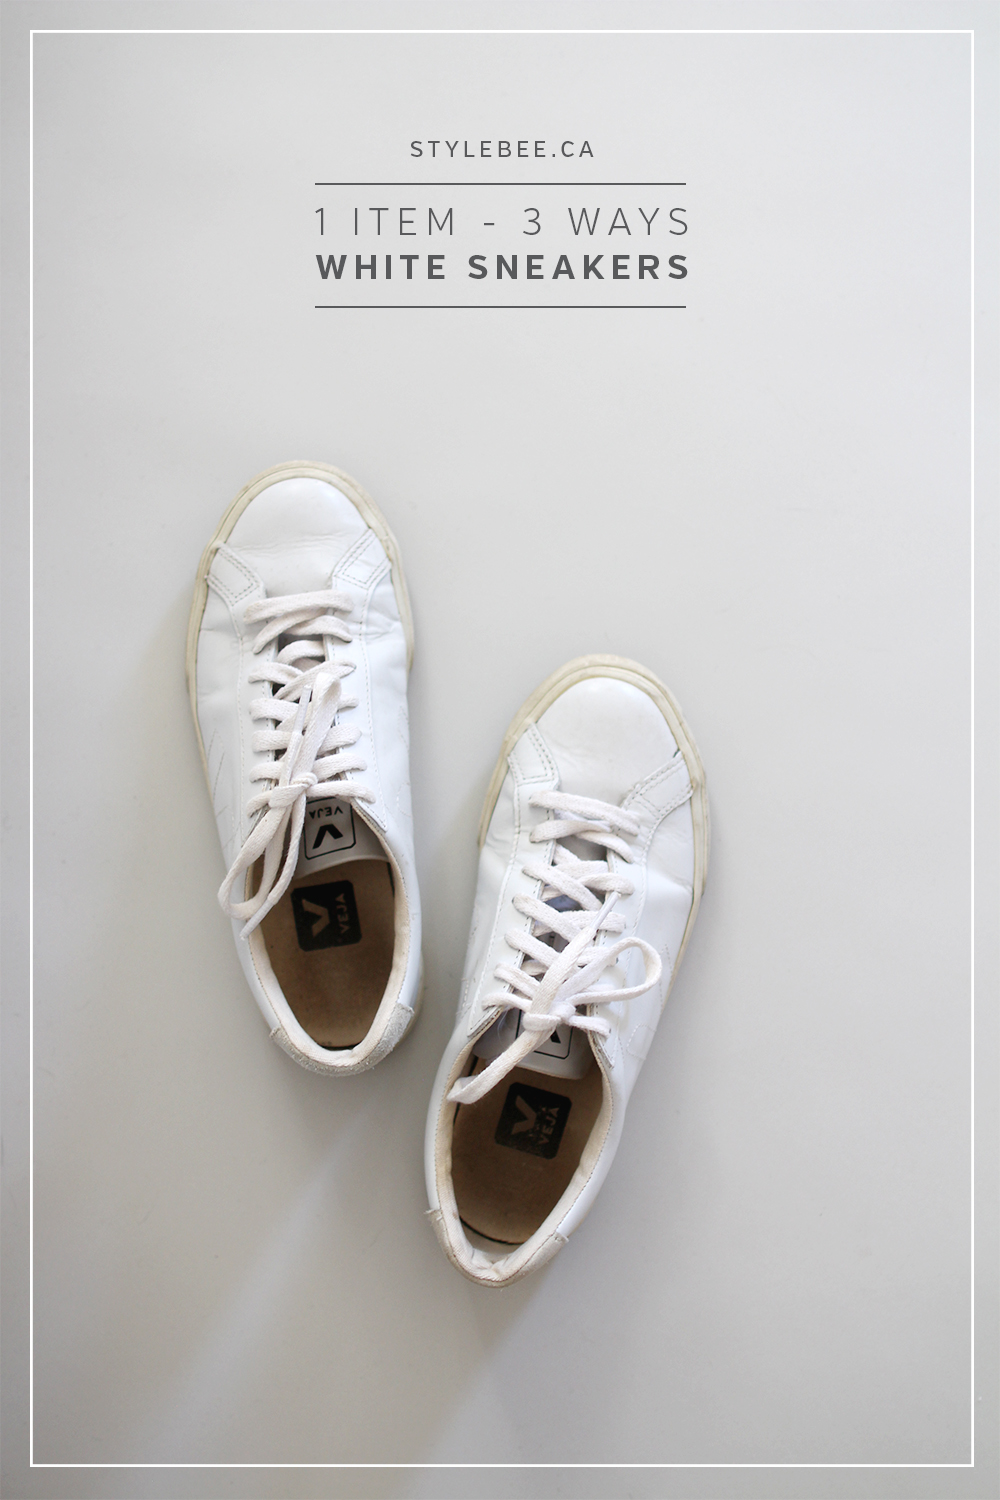 247c4d255a85 Style Bee - 1 ITEM - 3 WAYS - WHITE SNEAKERS